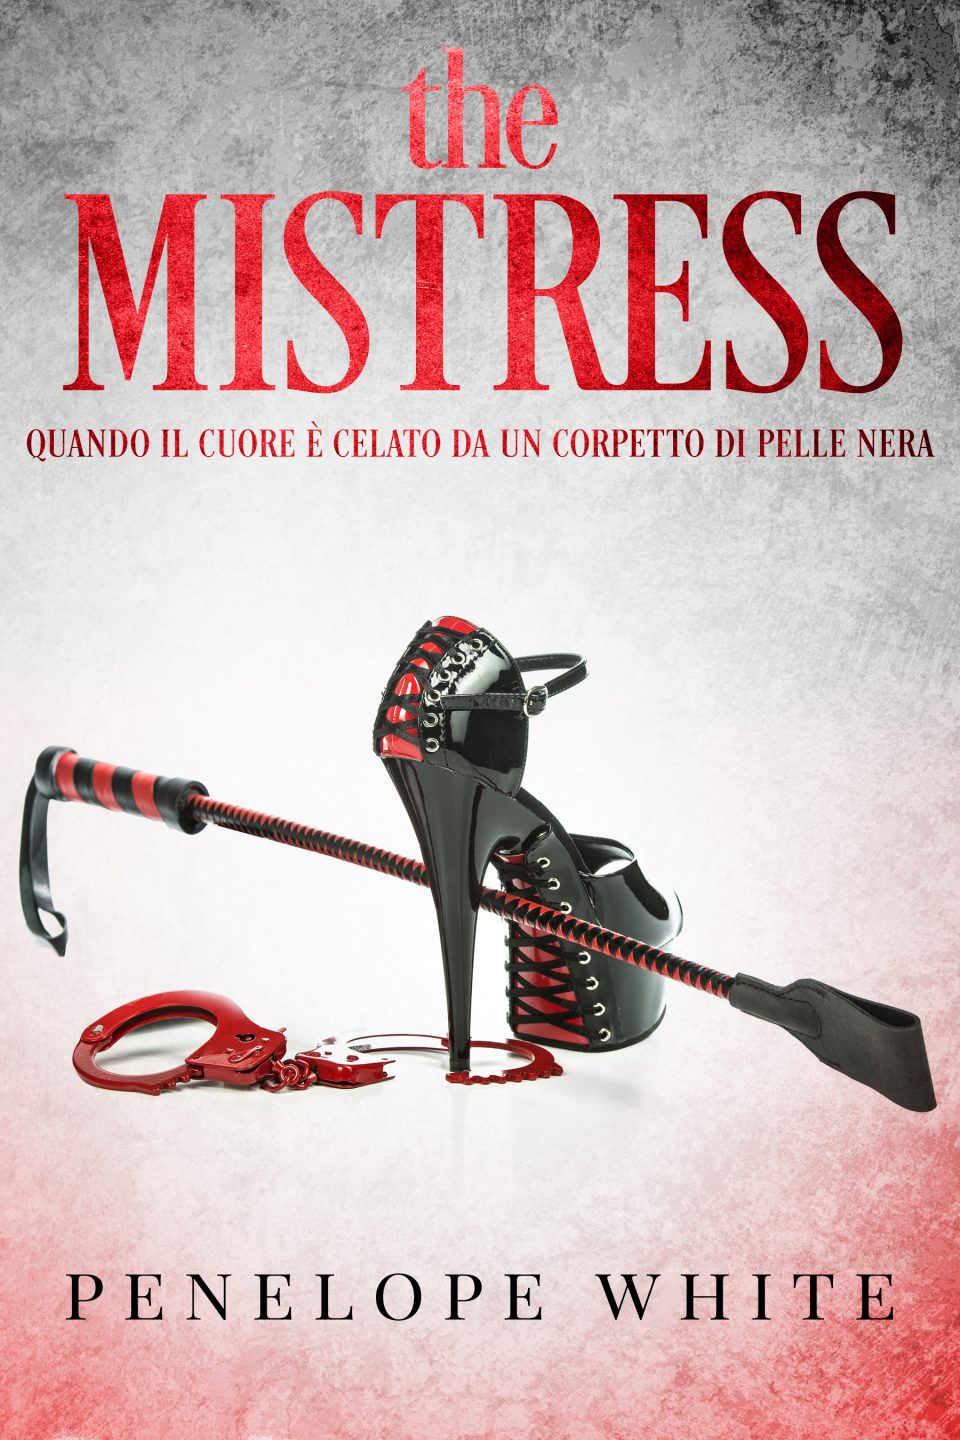 the MISTRESS di penelope white